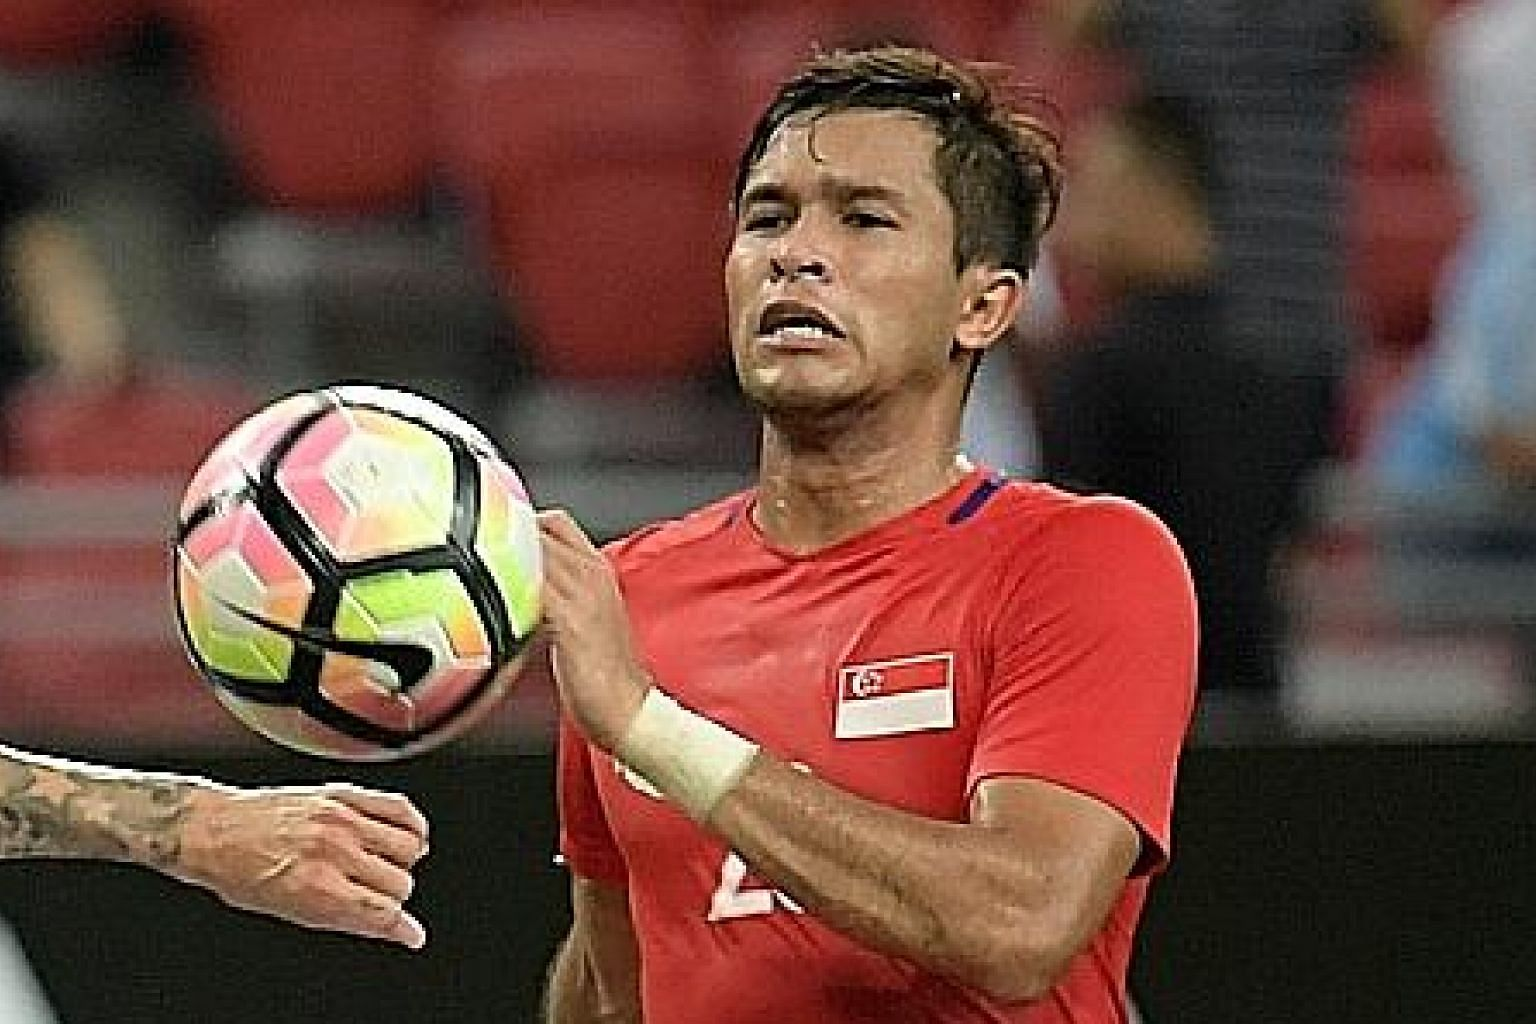 Zulfahmi Arifin earned praise from caretaker coach Nazri Nasir for sending his free kick into the top corner for his first international goal. The last-minute equaliser earned the Lions a 1-1 draw, though they lost 5-4 in the resultant penalty shoot-